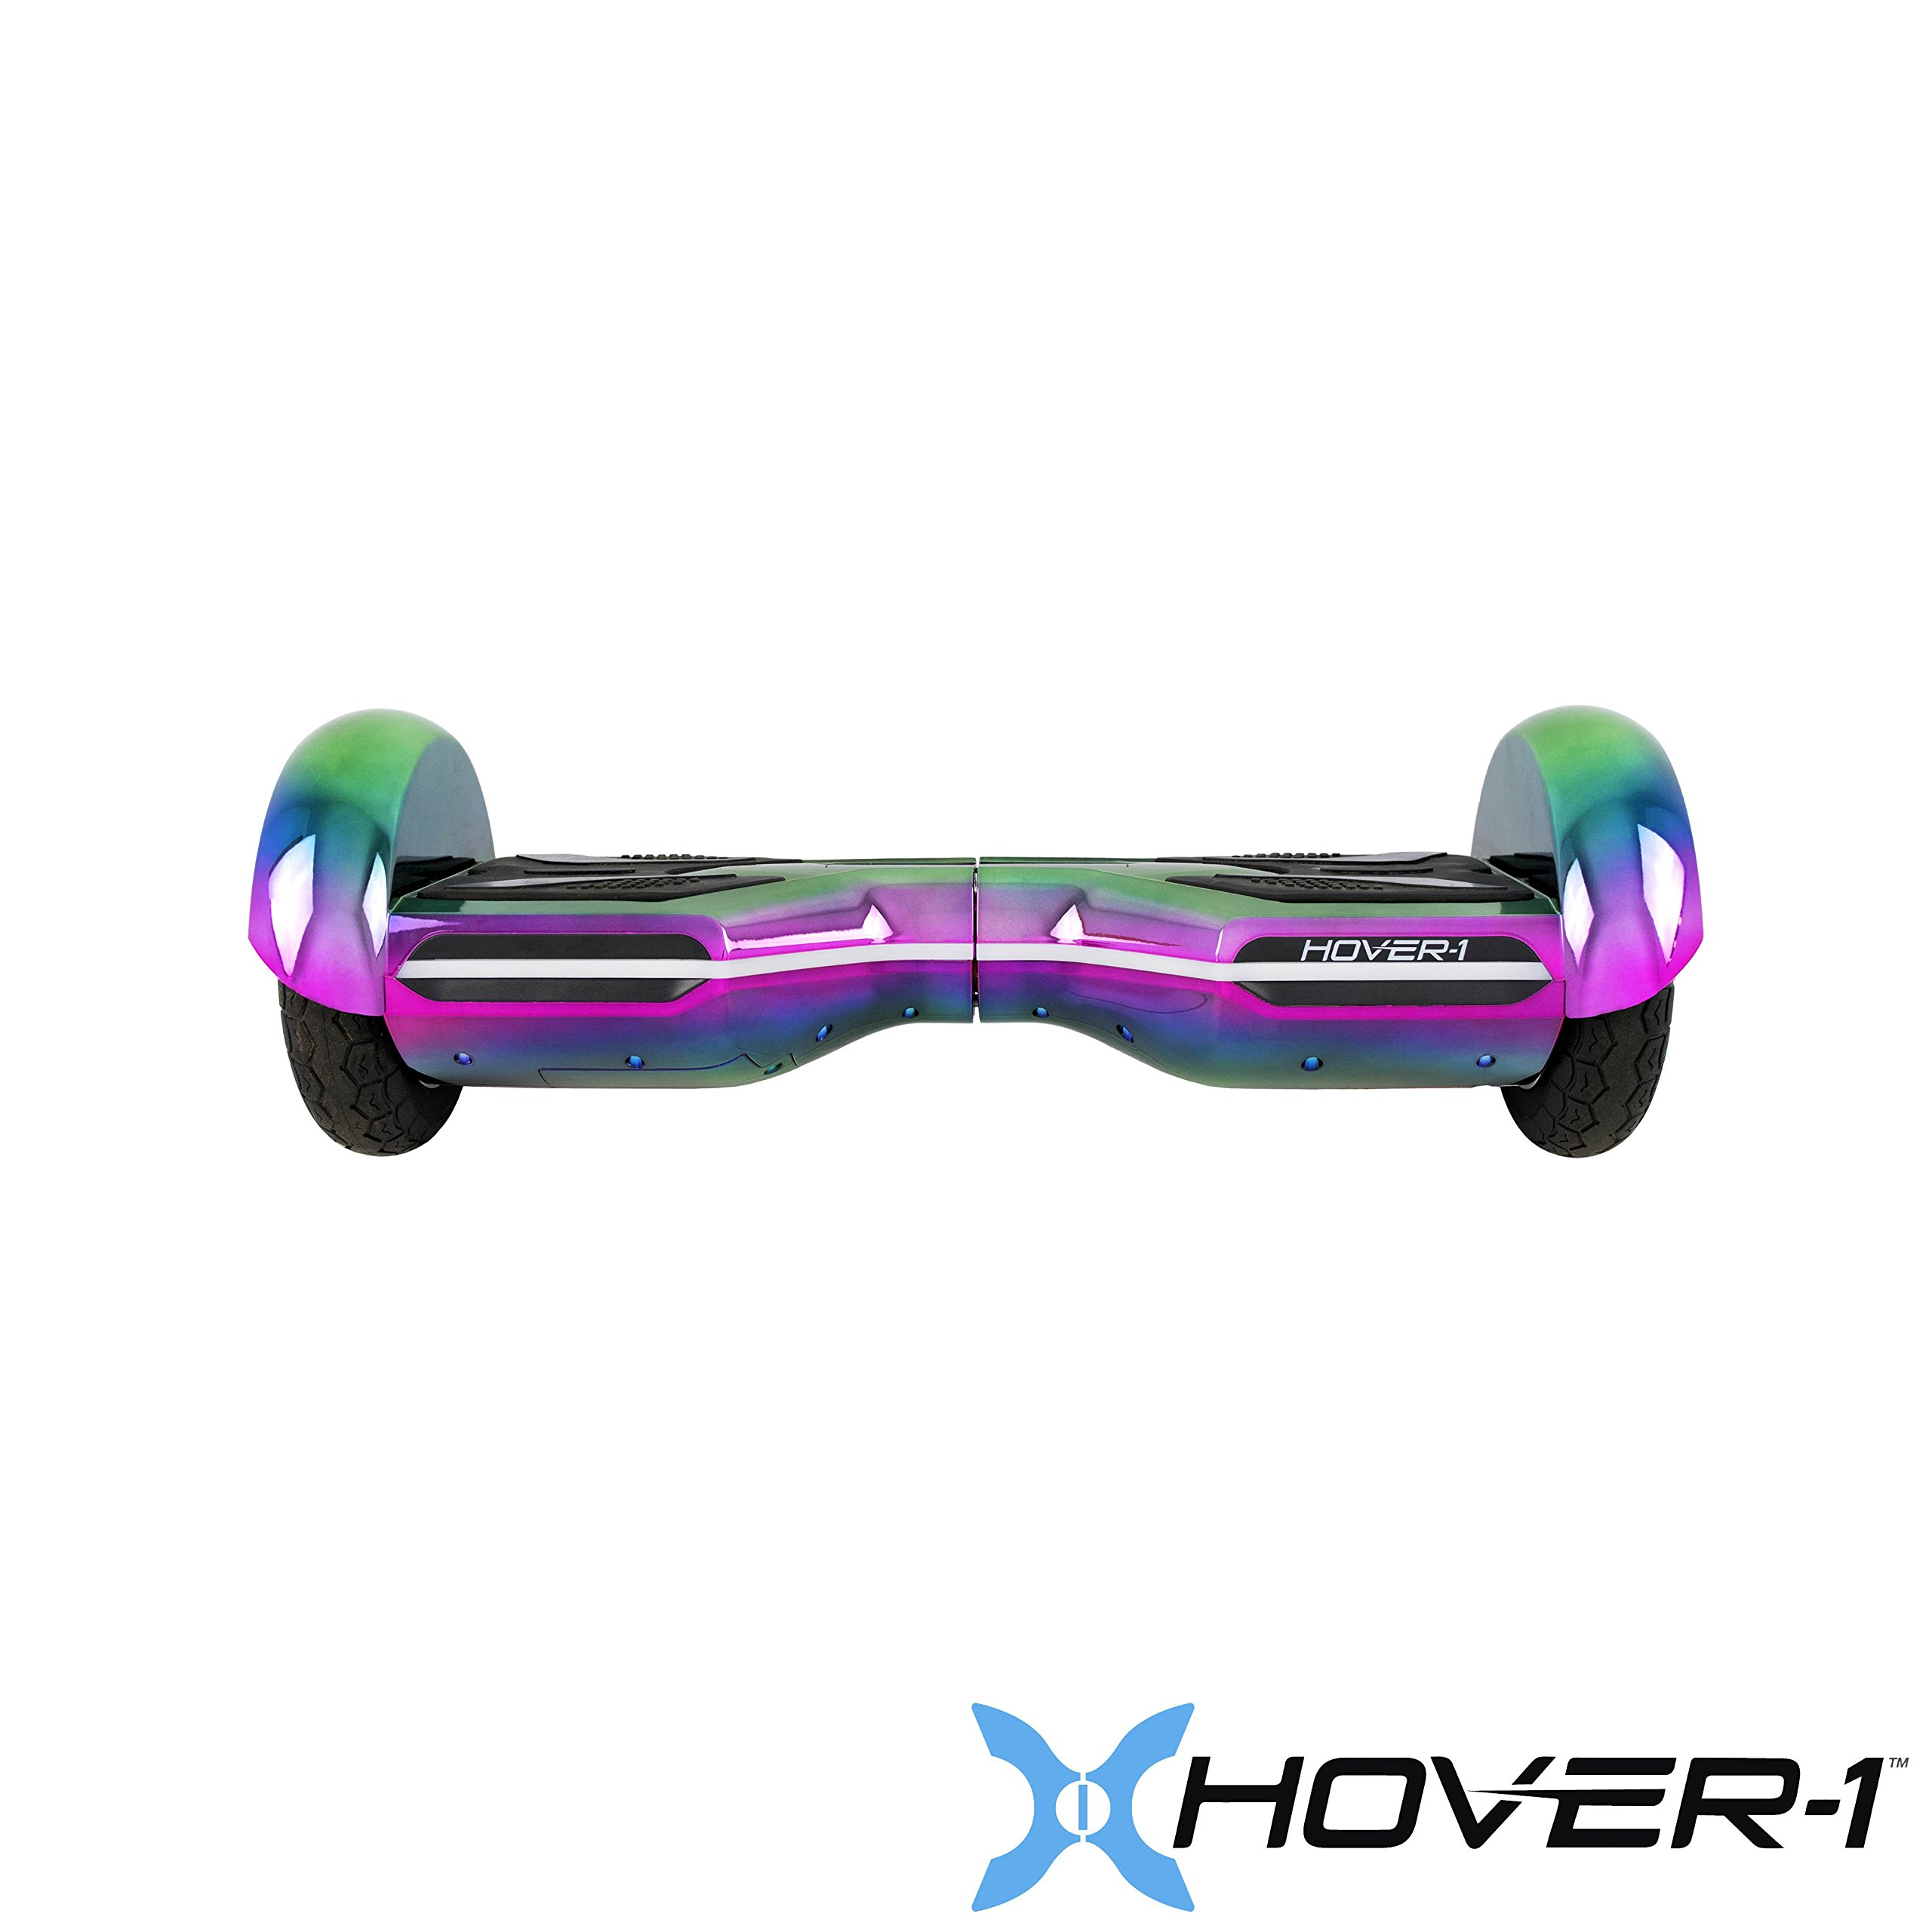 Hover-1 Horizon Electric Self Balancing Hoverboard with LED Lights and App Connectivity Iridescent